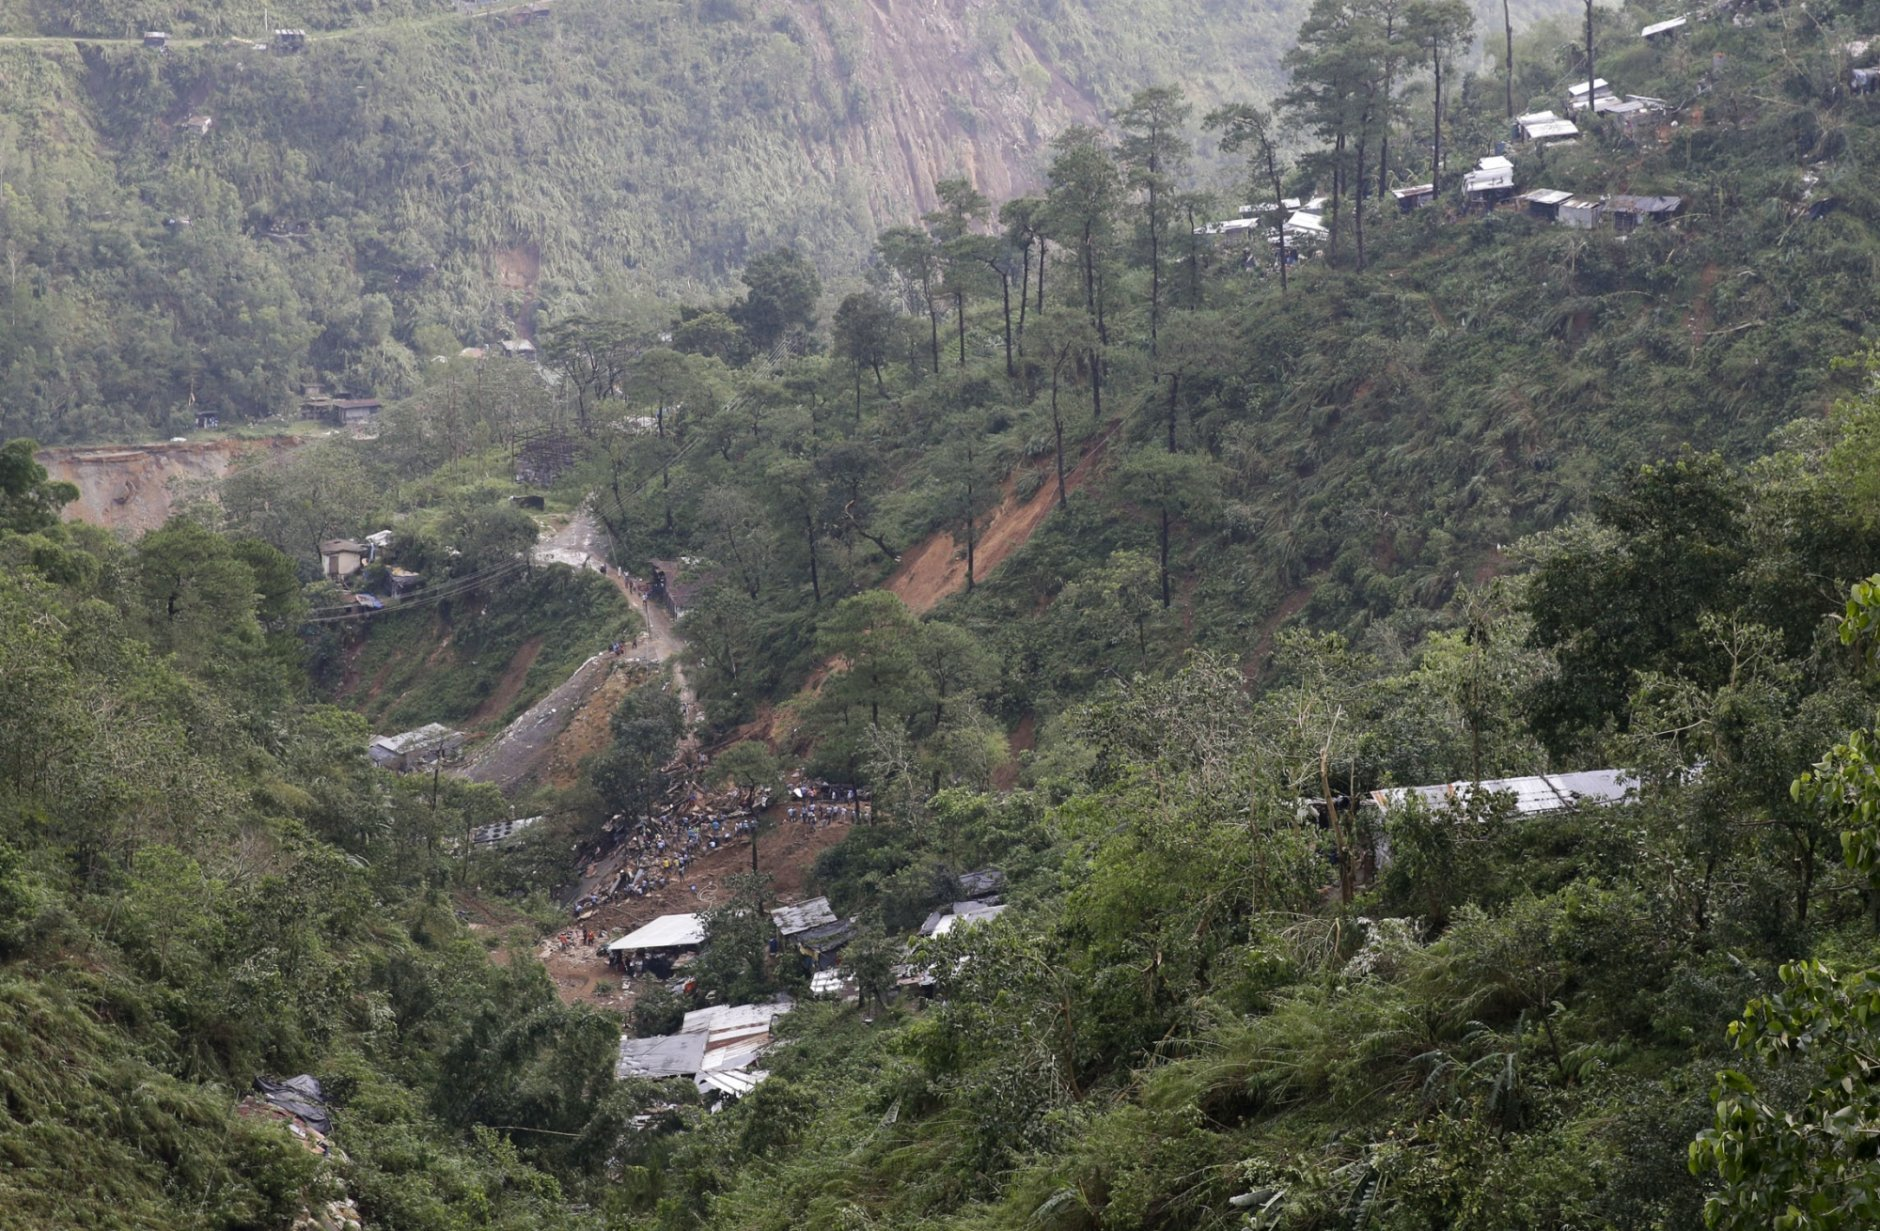 Rescuers at the site where victims were believed to have been buried by a landslide after Typhoon Mangkhut barreled across Itogon, Benguet province, northern Philippines, Monday, Sept. 17, 2018. Itogon Mayor Victorio Palangdan said that at the height of the typhoon's onslaught Saturday afternoon, dozens of people, mostly miners and their families, rushed into an old three-story building in the village of Ucab. The building, a former mining bunkhouse that had been transformed into a chapel, was obliterated when part of a mountain slope collapsed. (AP Photo/Aaron Favila)